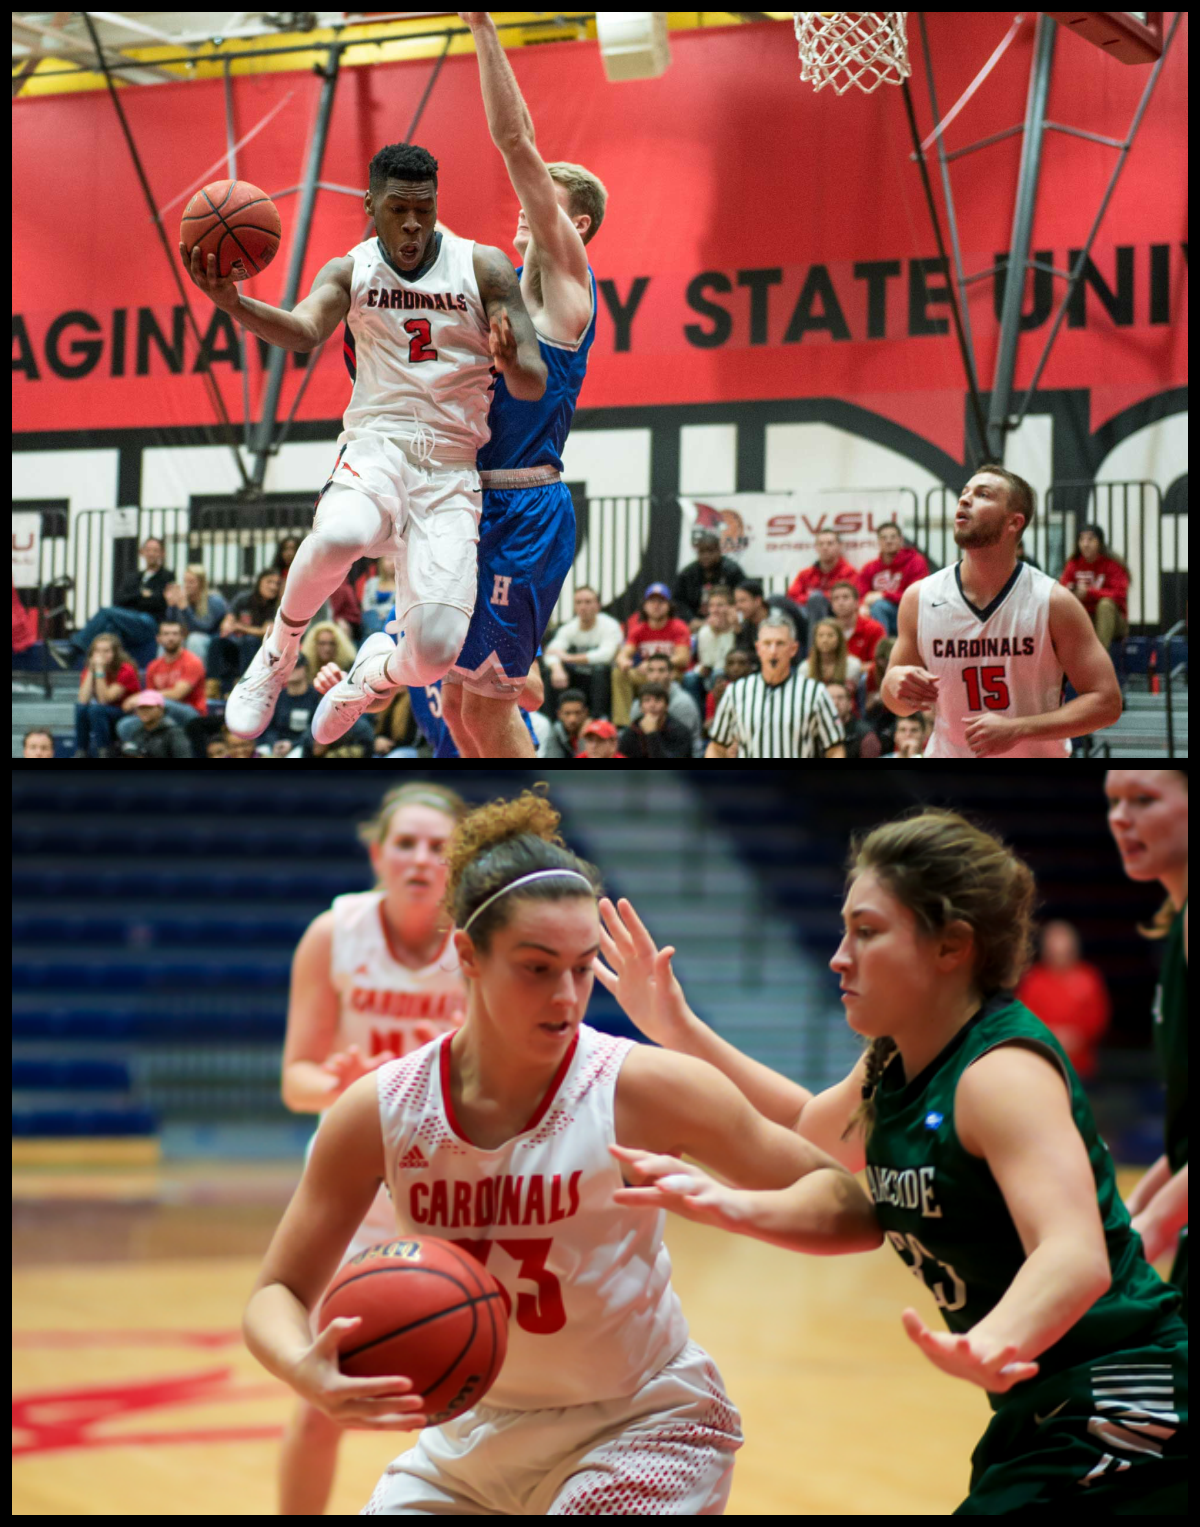 Collage of mens and womens basketball action shots